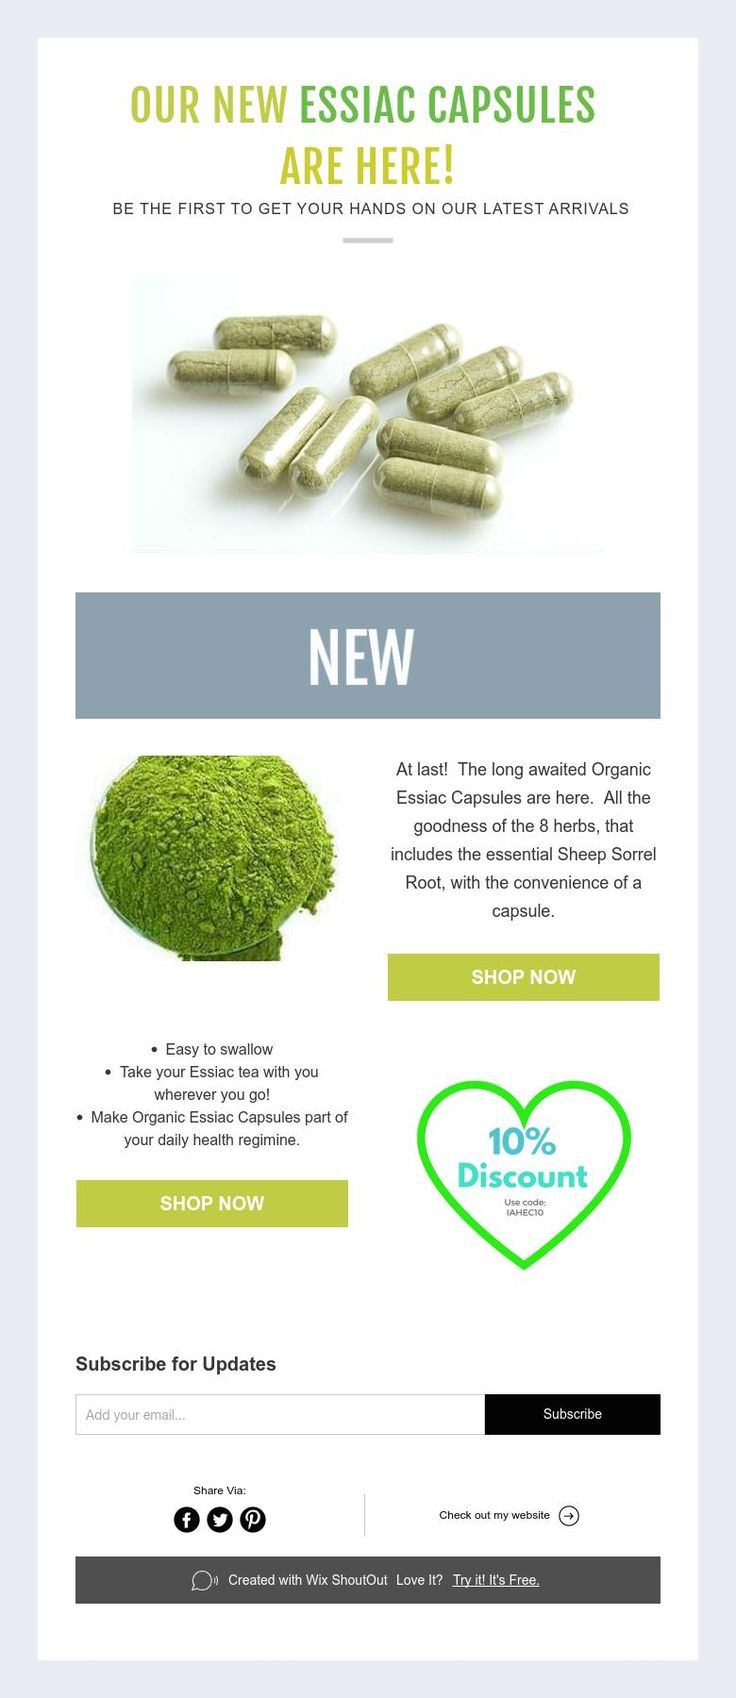 Cancer cure essiac herbal tea - Our New Essiac Capsules Are Here Be The First To Get Your Hands On Our